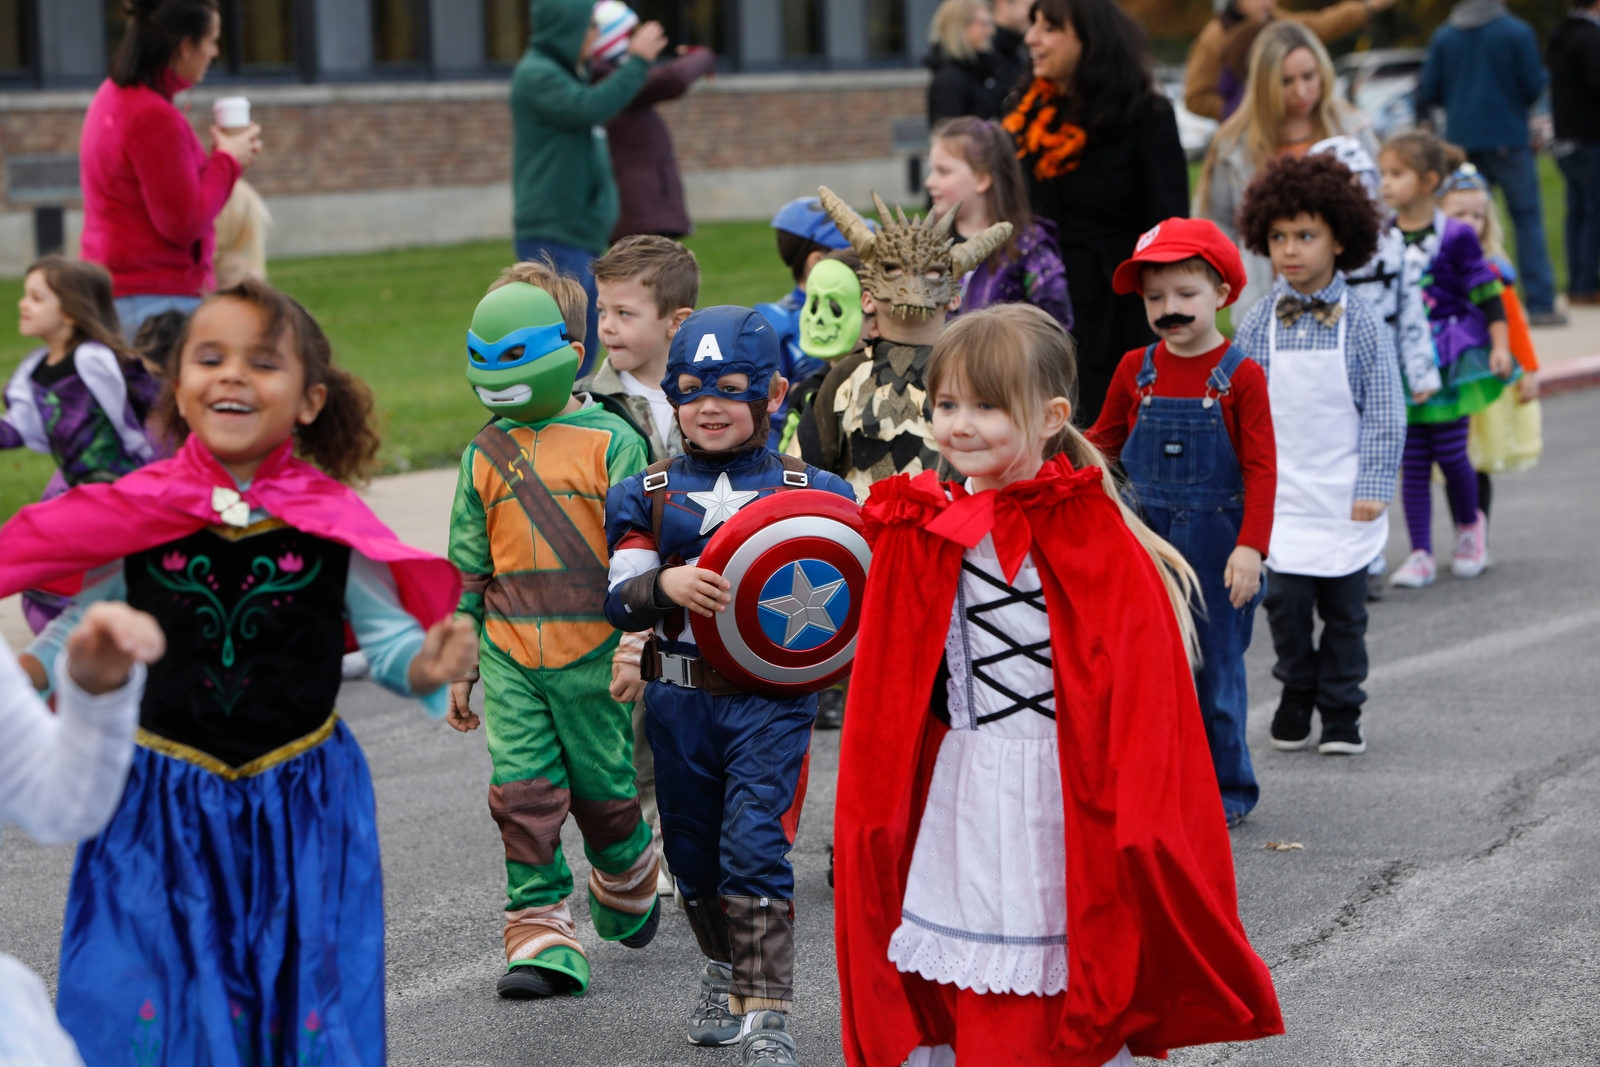 Children in the universal pre-K and kindergarten classes at Lew-Port Primary Education Center parade around the school in costume during the Halloween parade, Tuesday, Oct. 31, 2017.